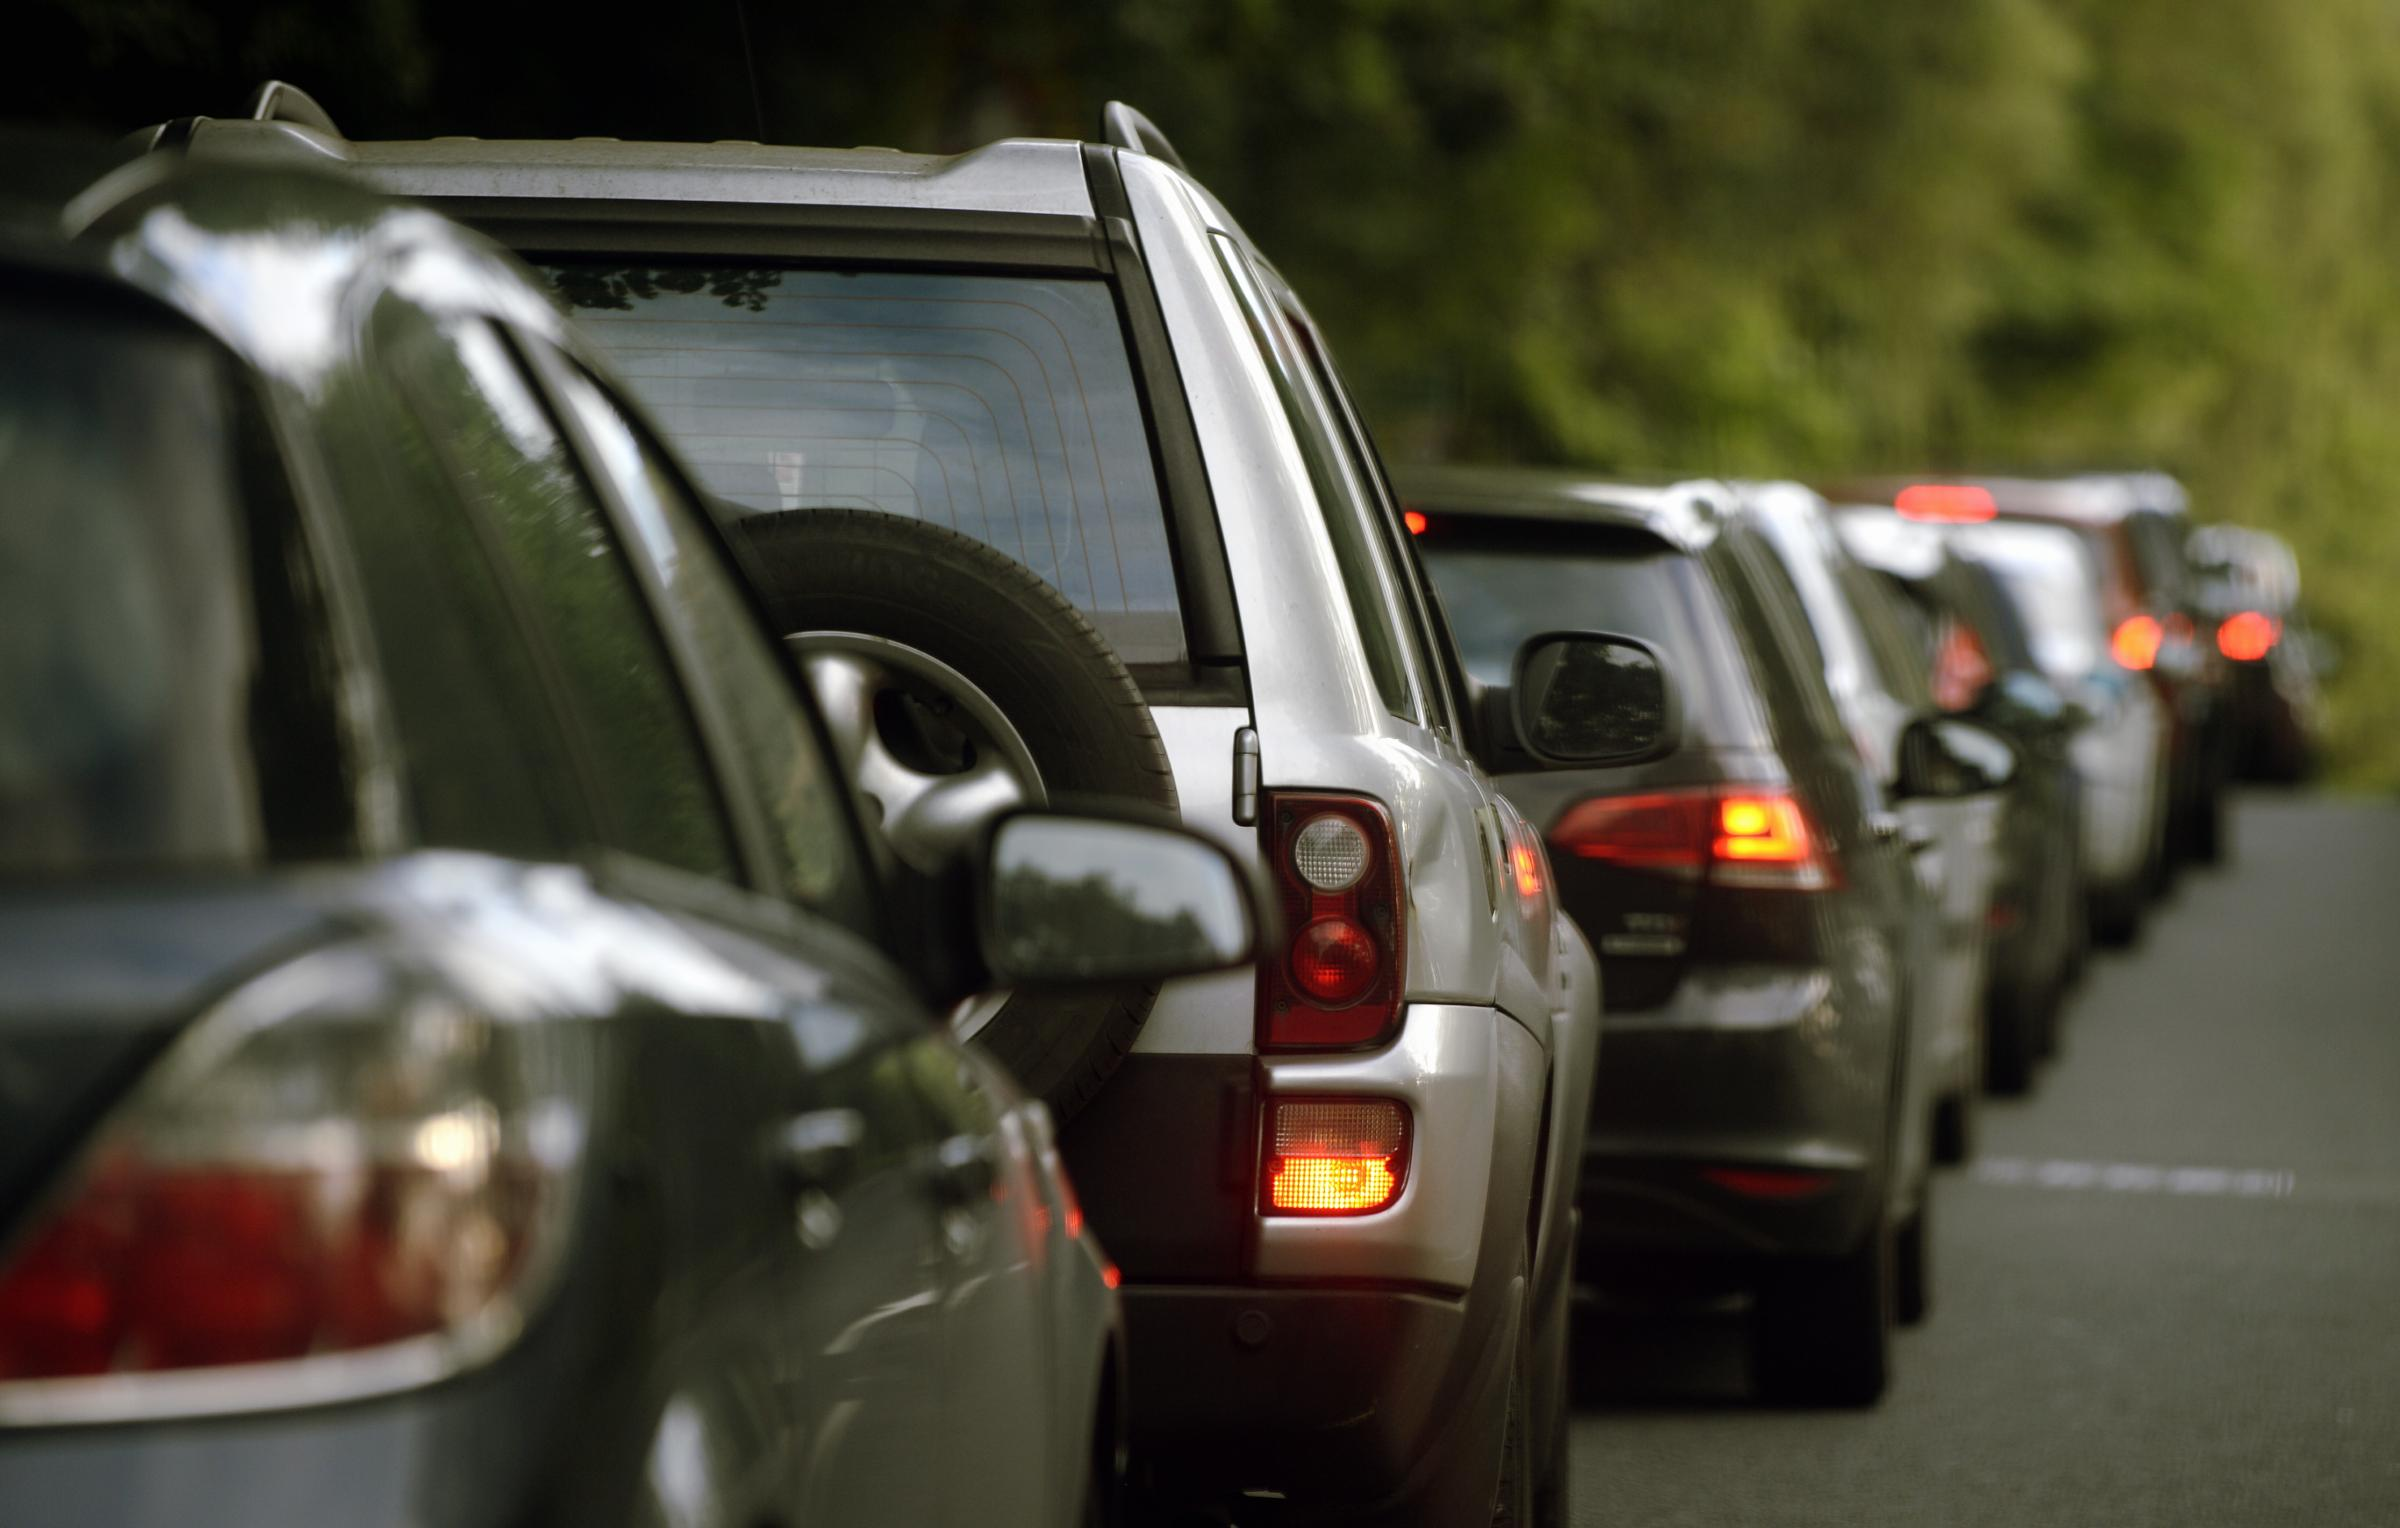 Reports of tailbacks on A590